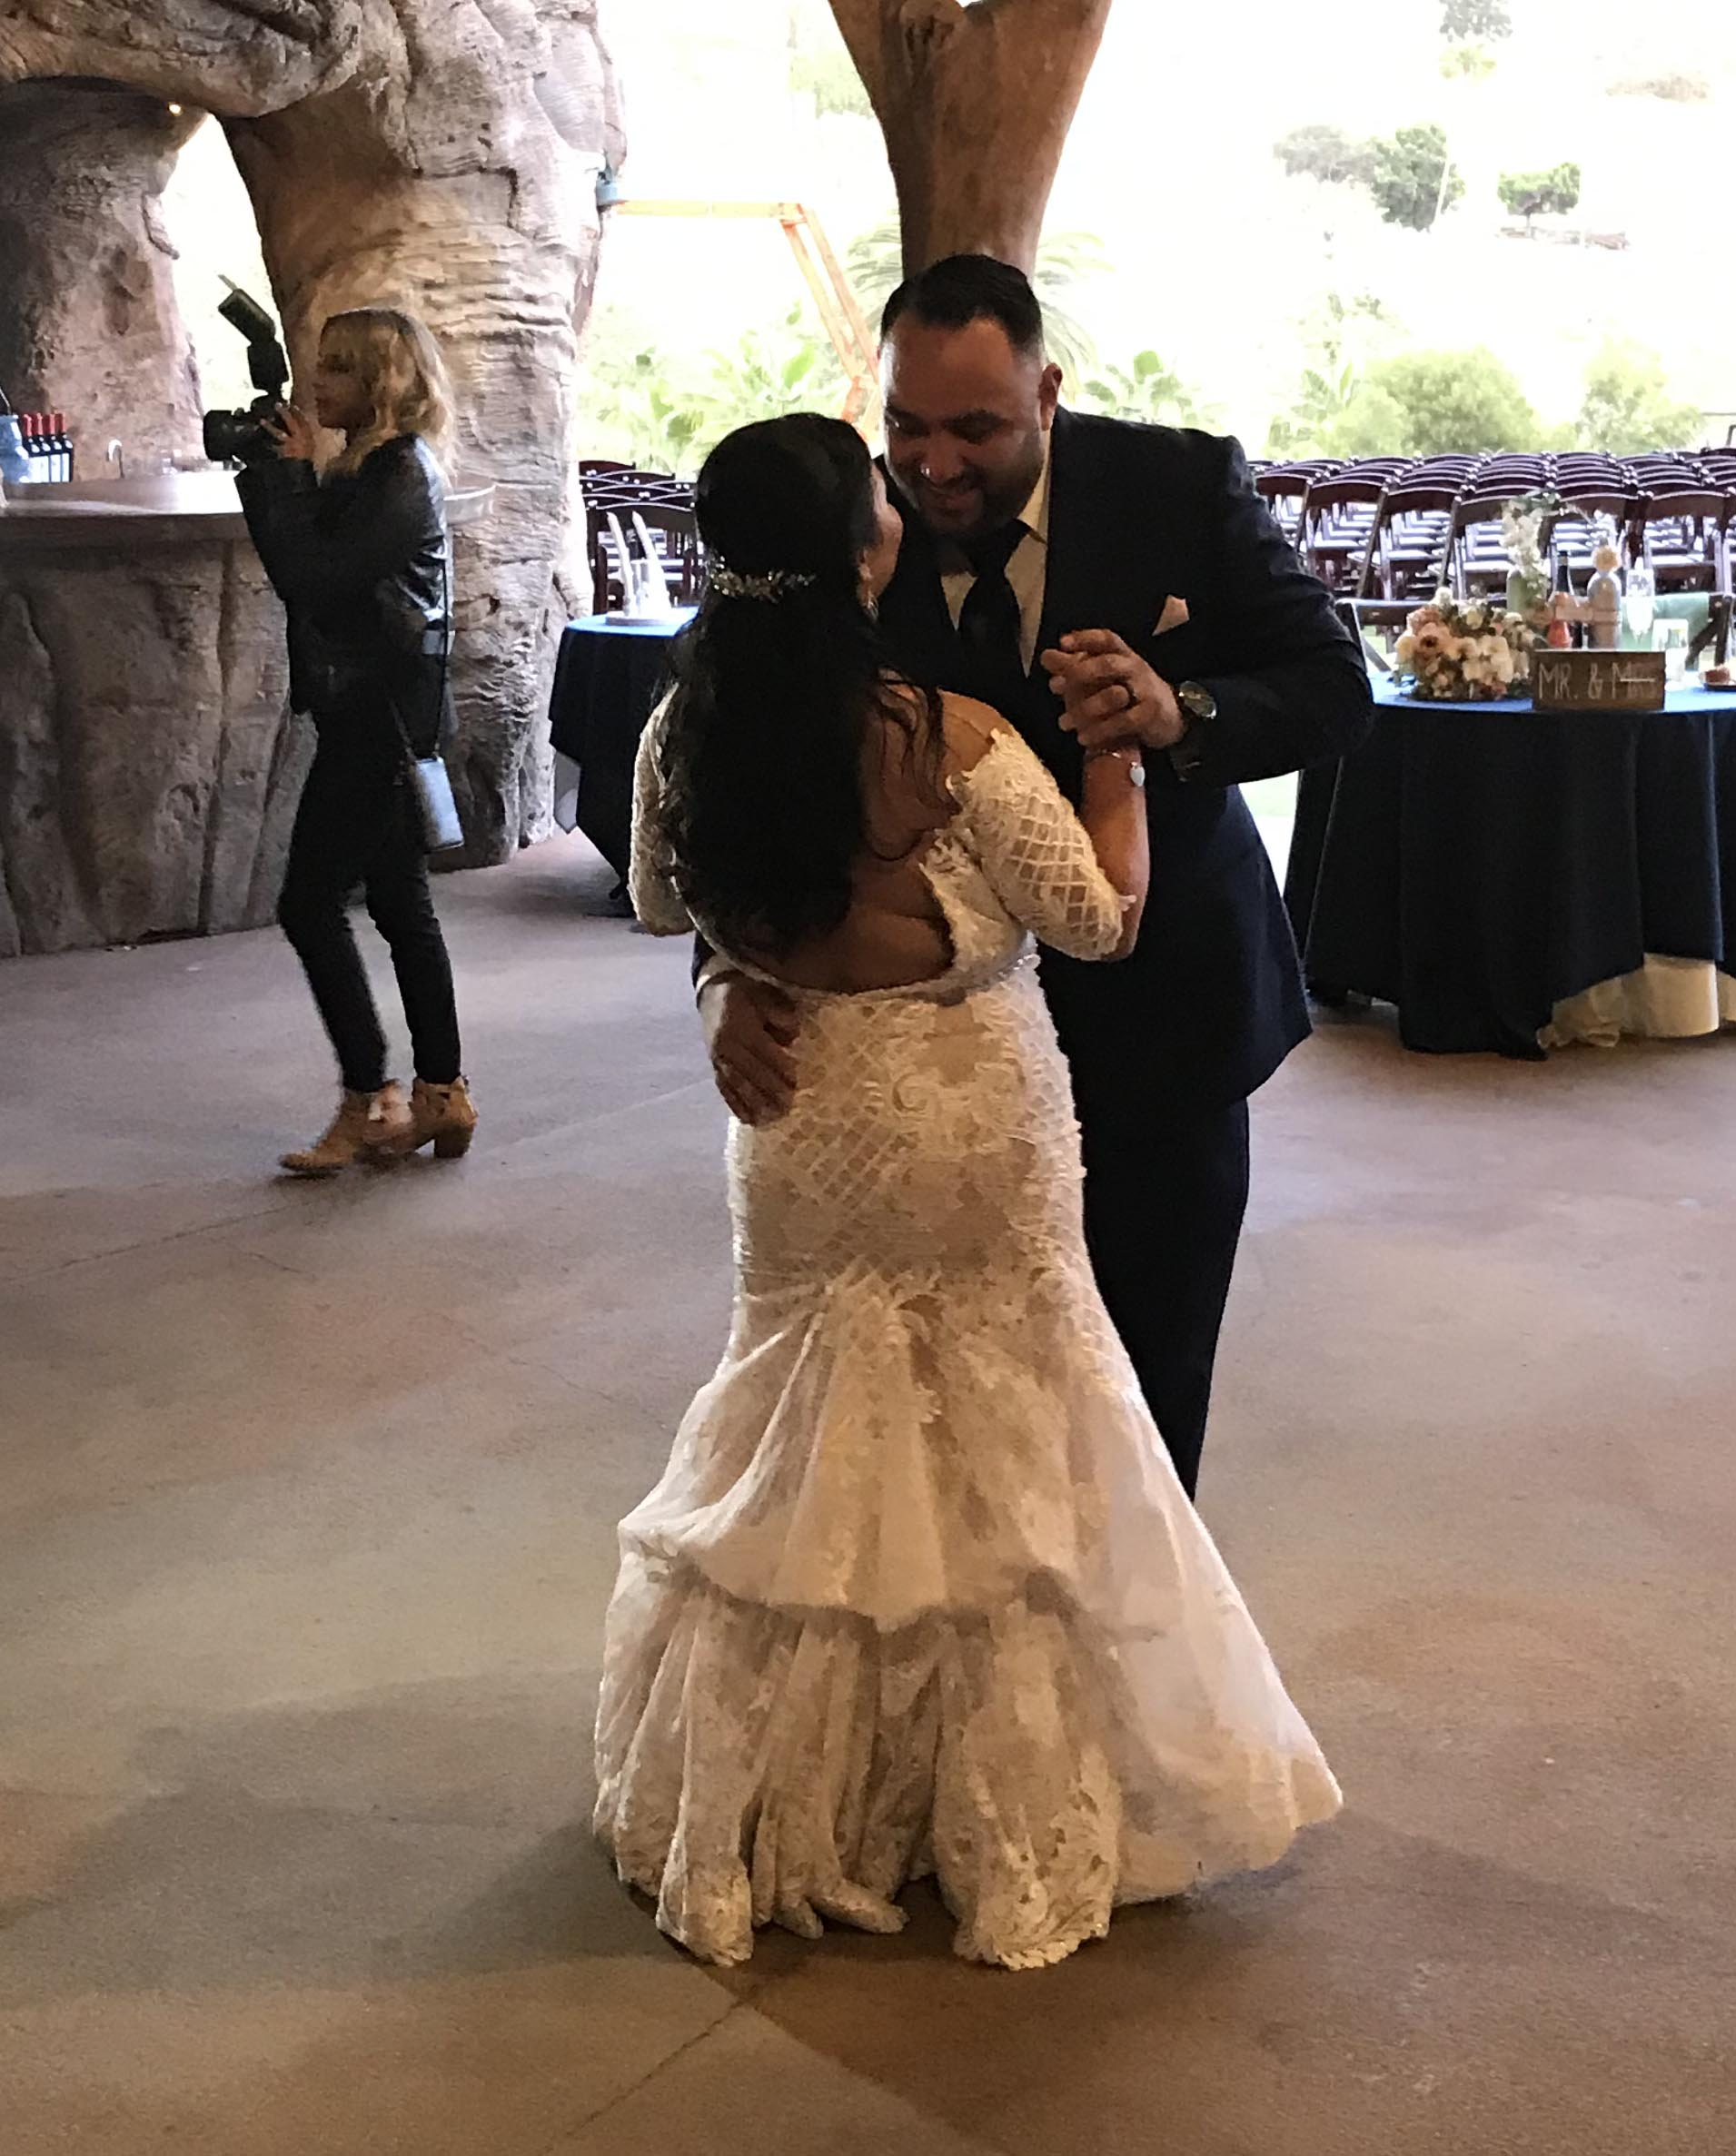 San Diego wedding DJ at the Safari park - Becks Entertainment